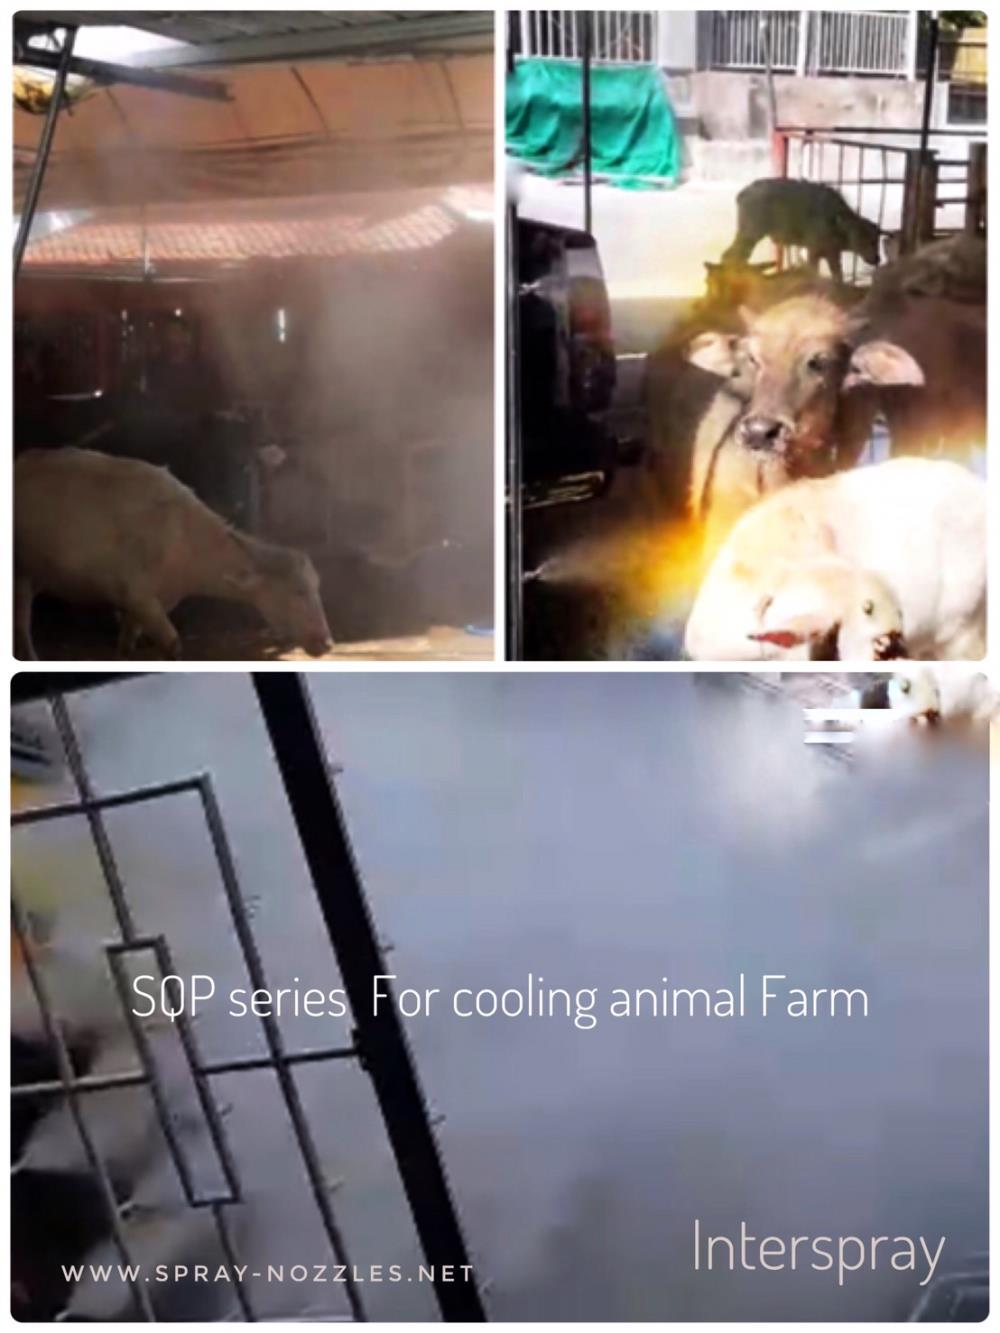 SQP SERIES FOR COOLING ANIMAL FARM